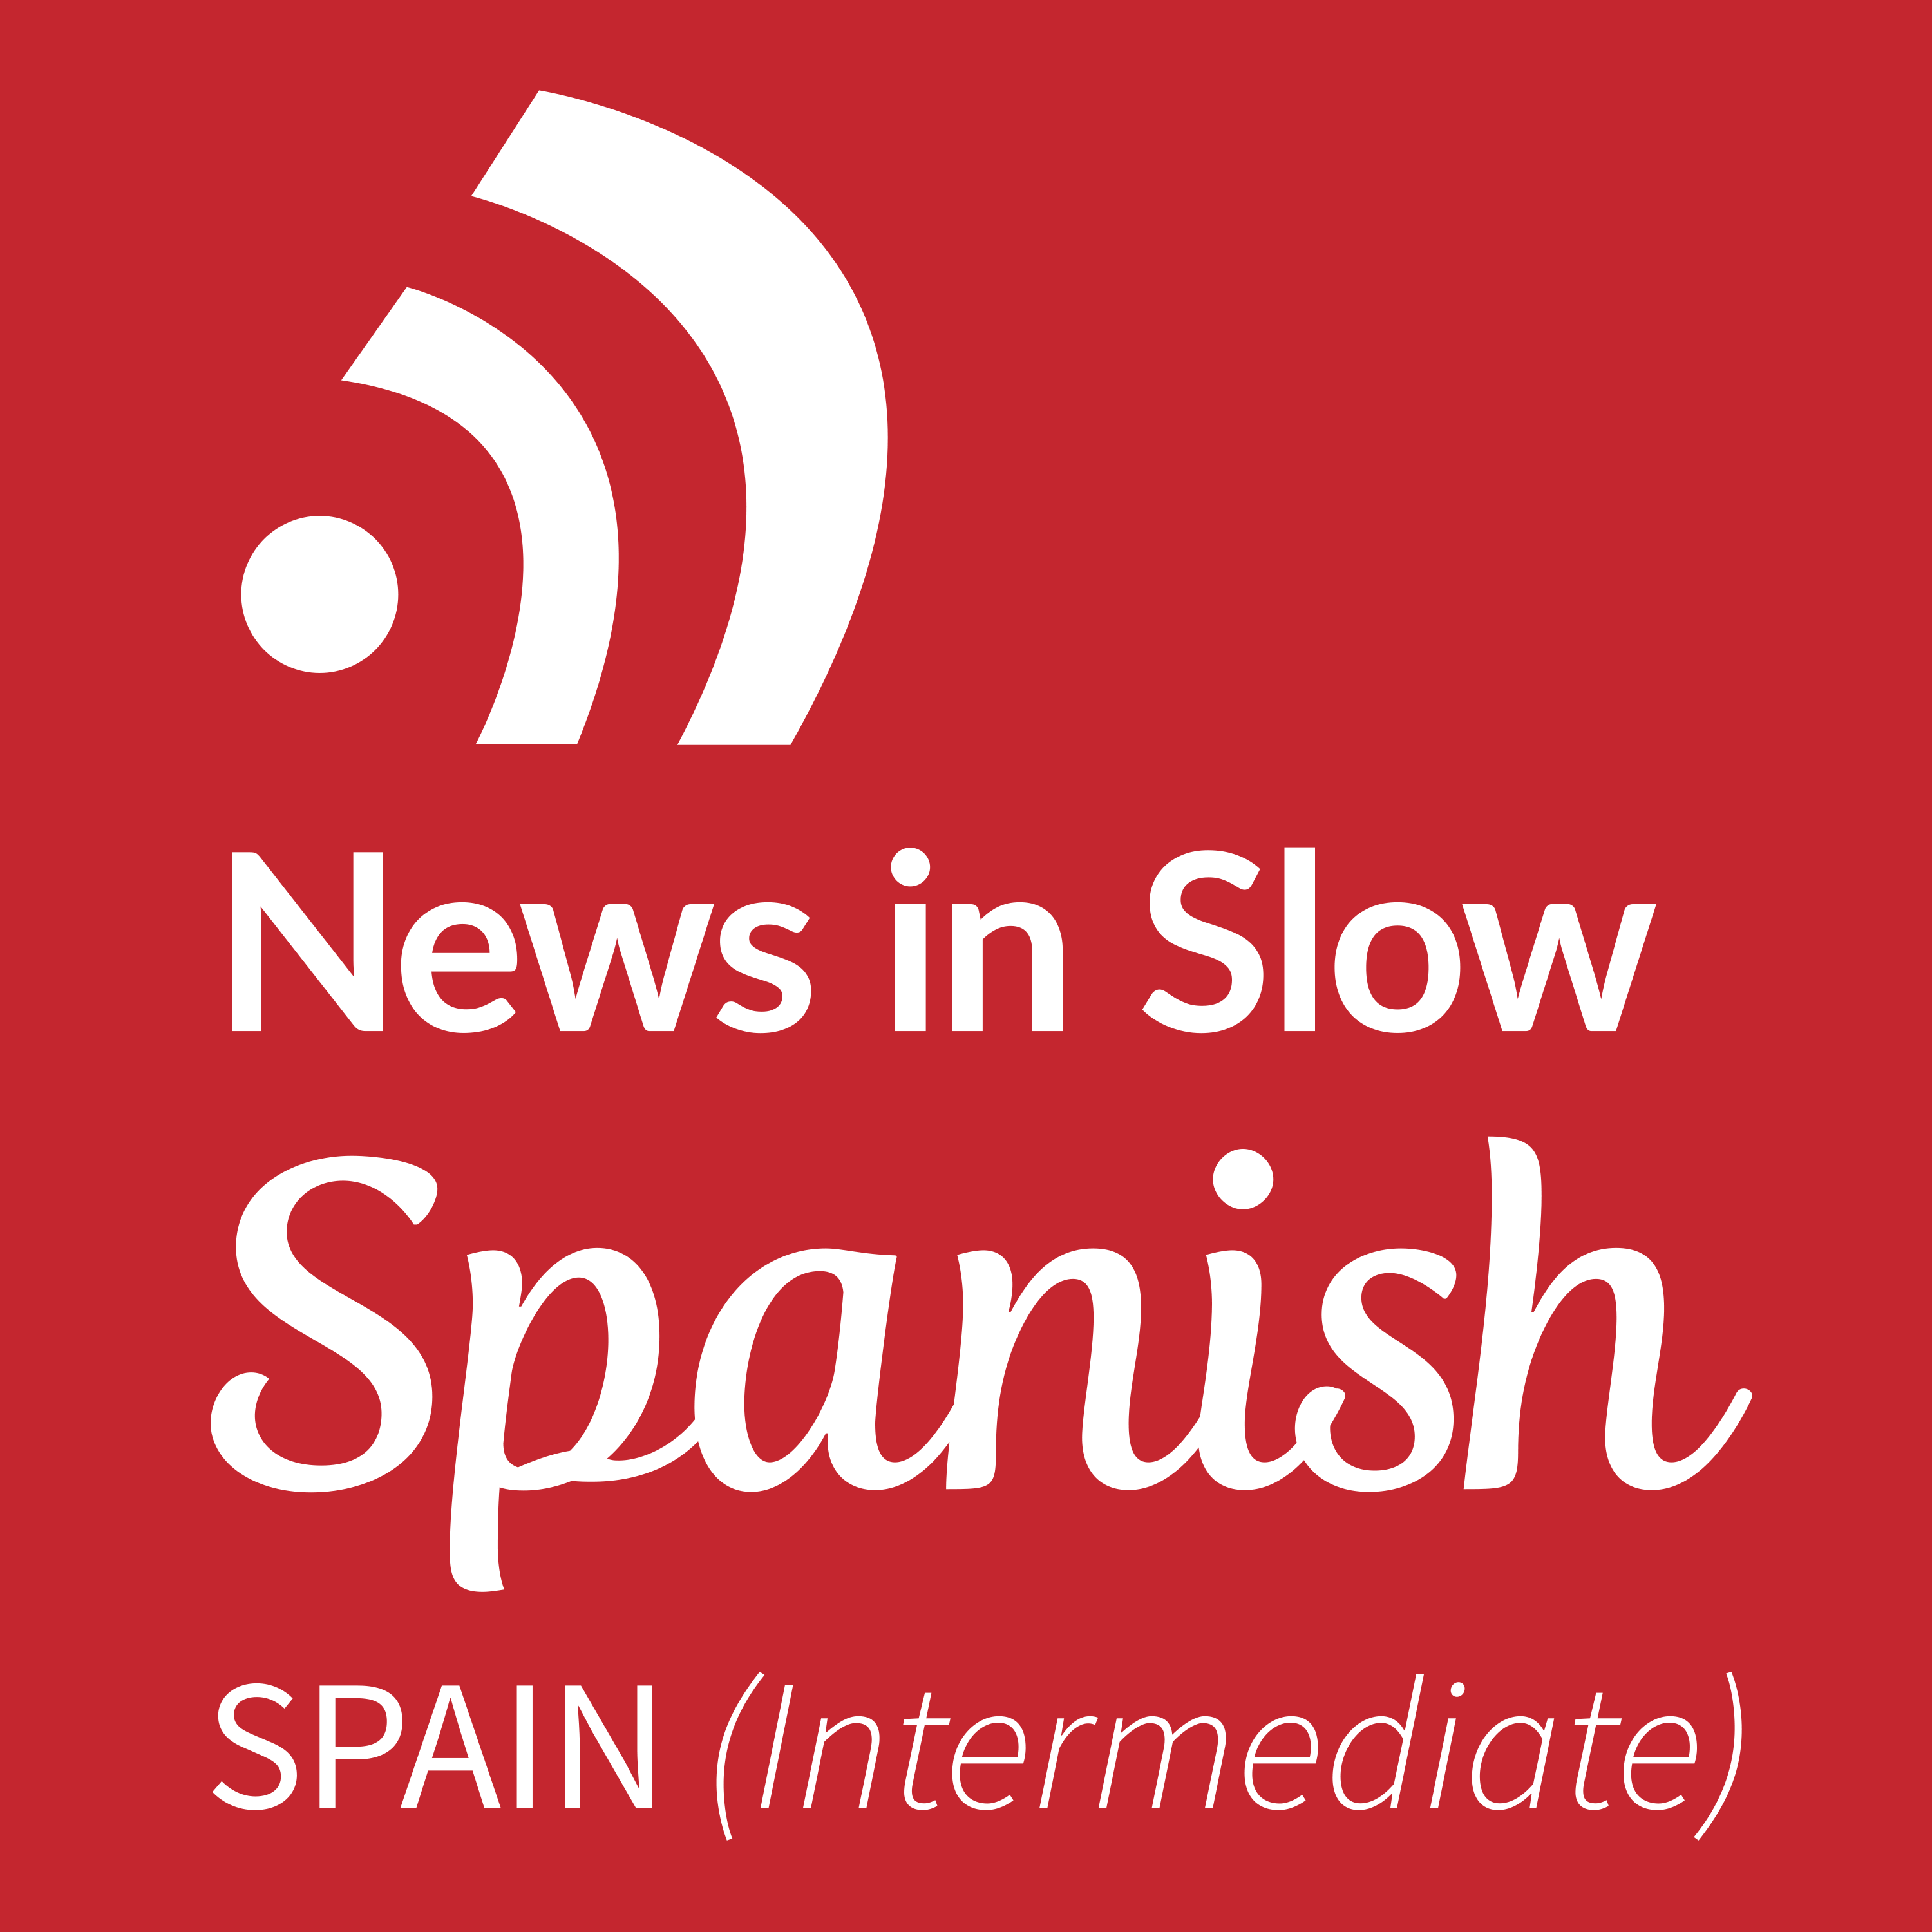 News in Slow Spanish - #412 - Weekly language learning show with discussion of current events